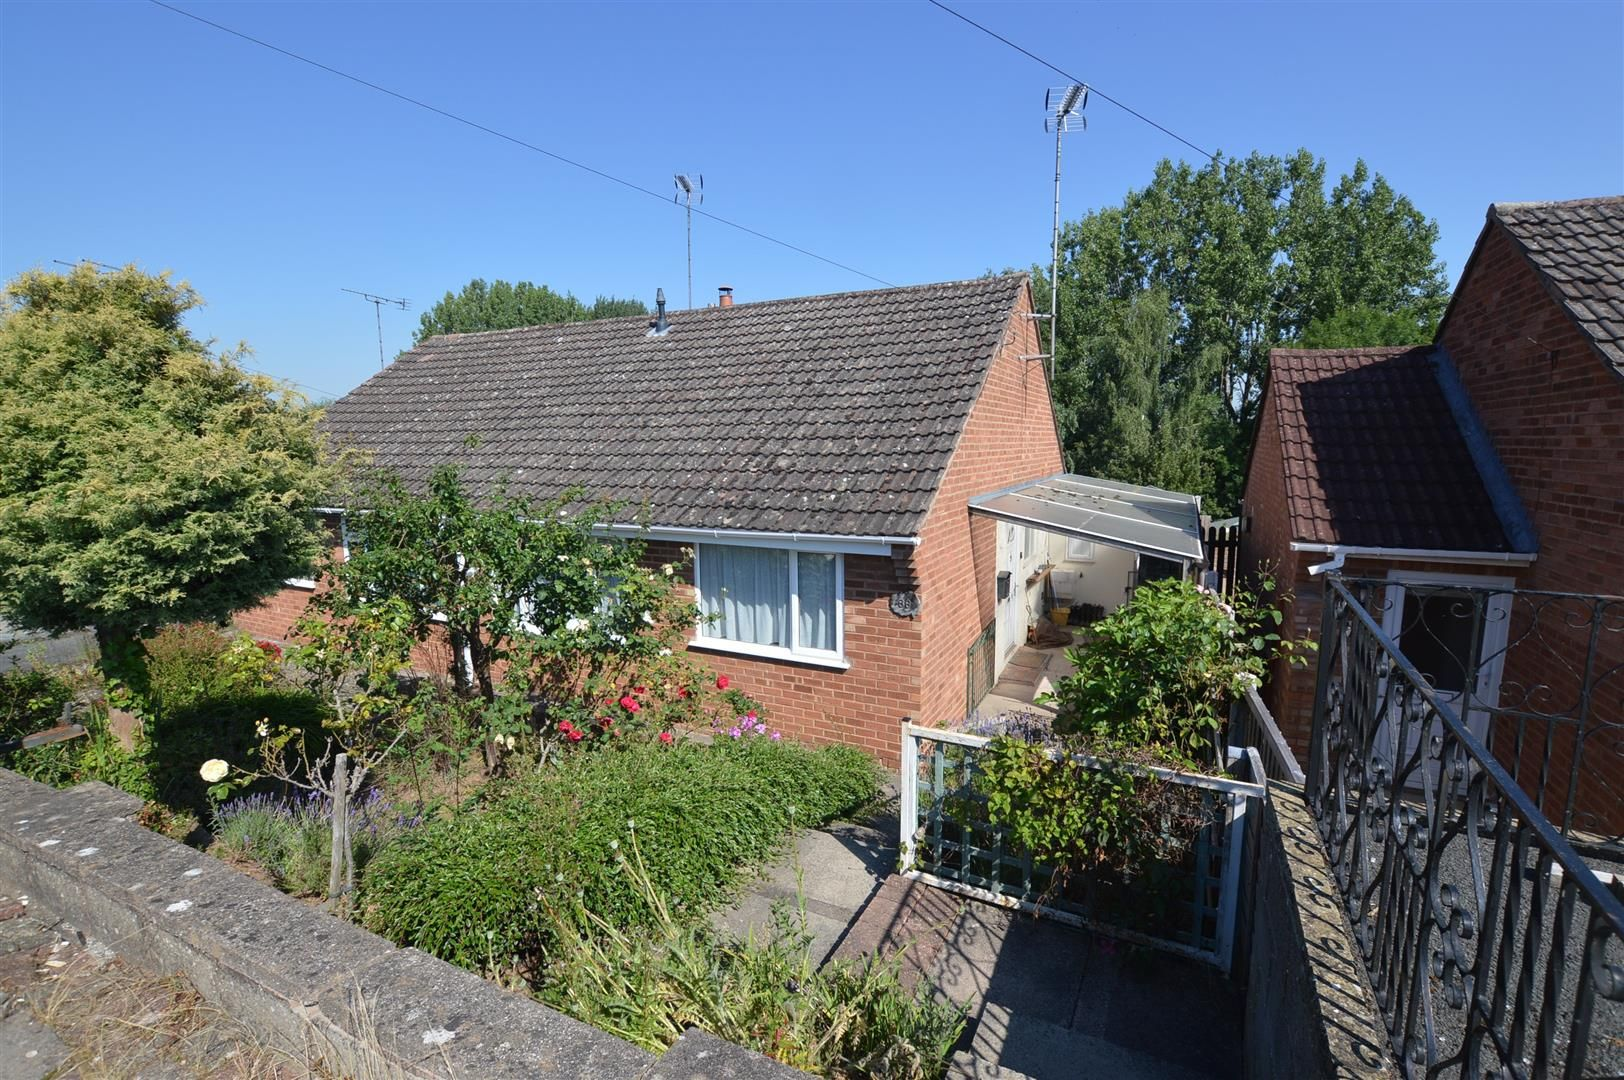 2 bed semi-detached bungalow for sale in Leominster 1